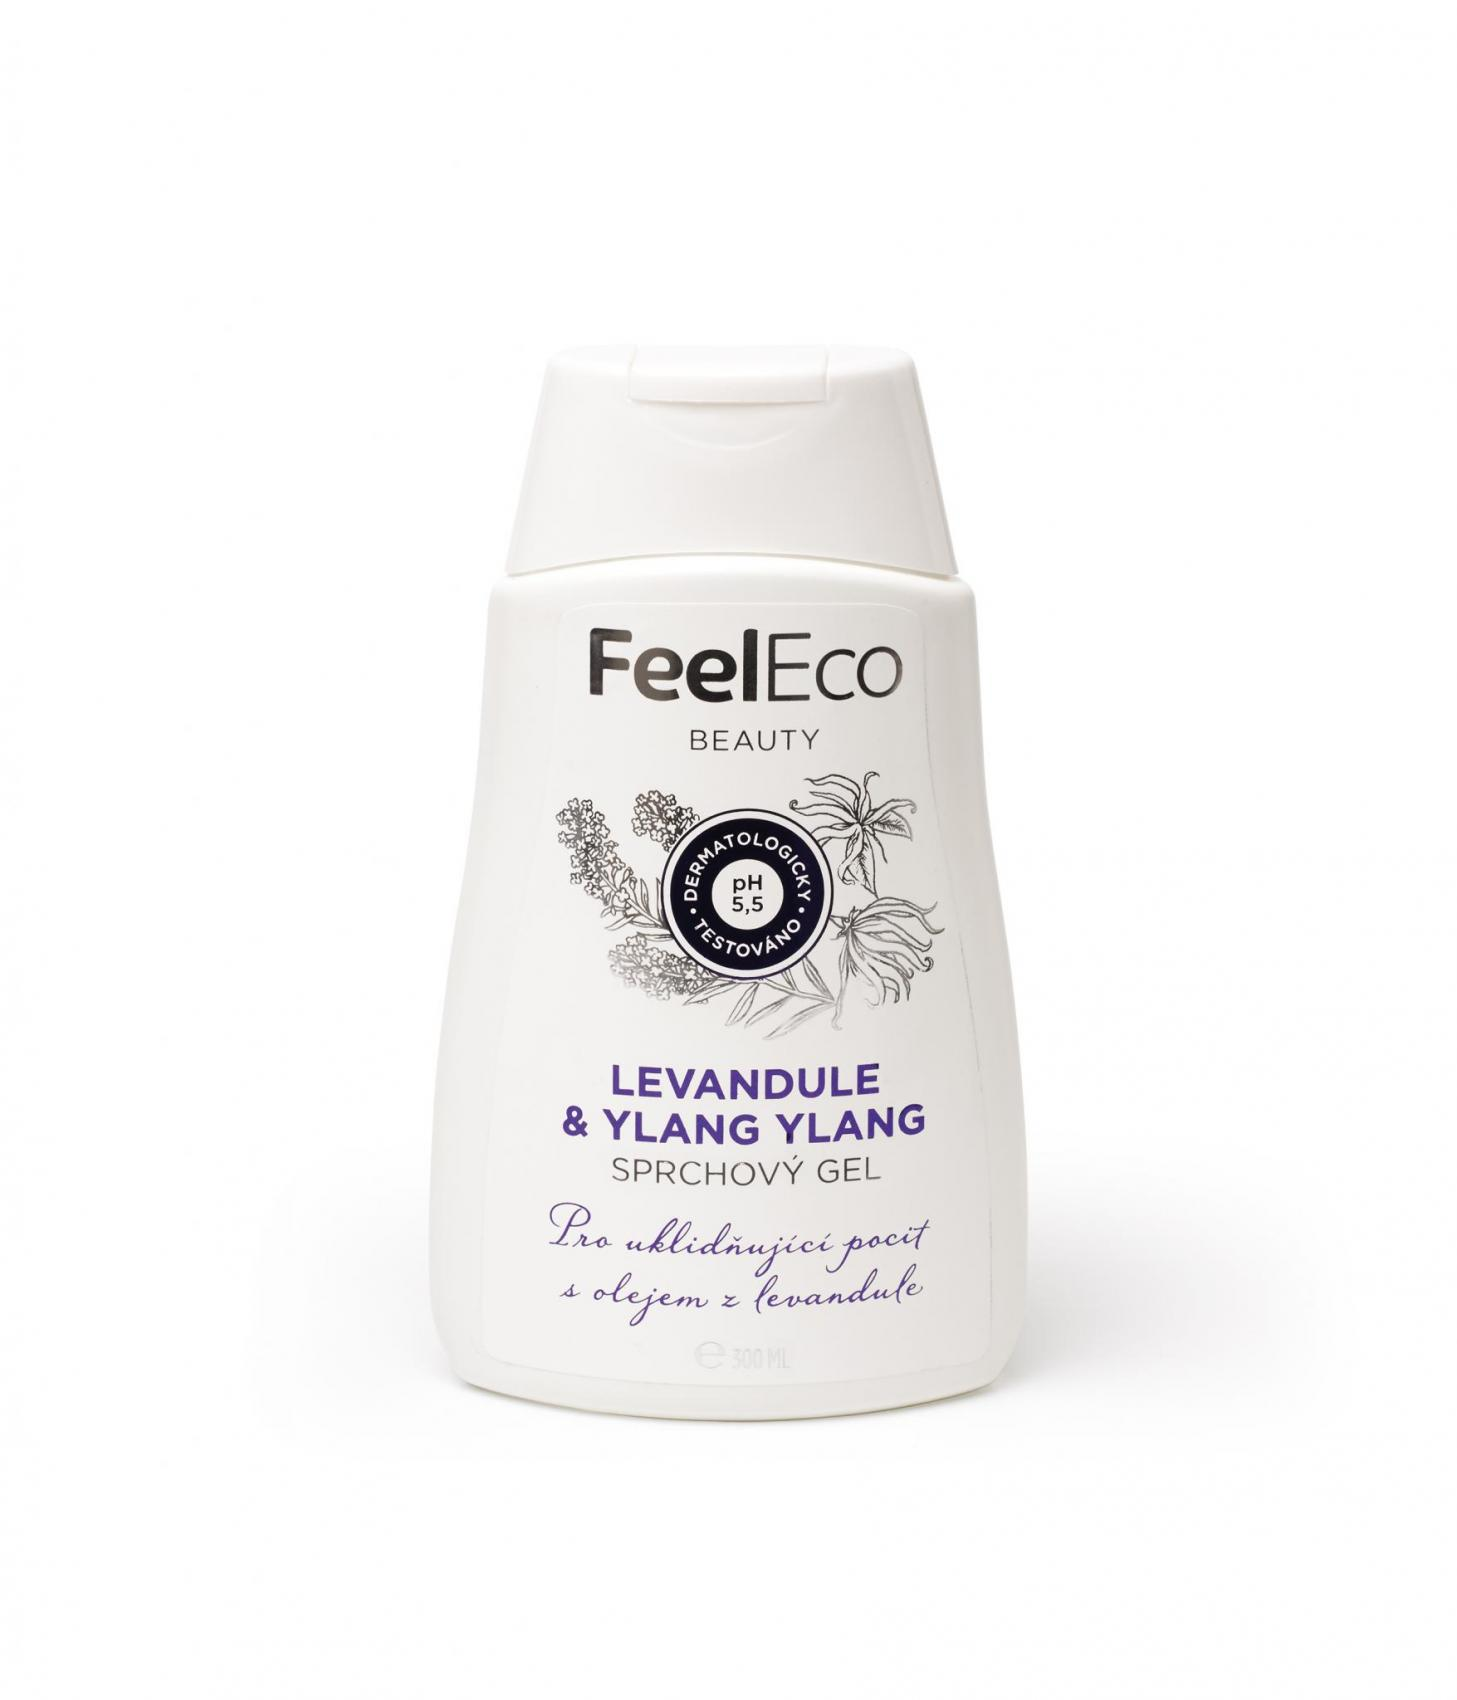 Feel Eco sprchový gel levandule & ylang ylang, 300ml